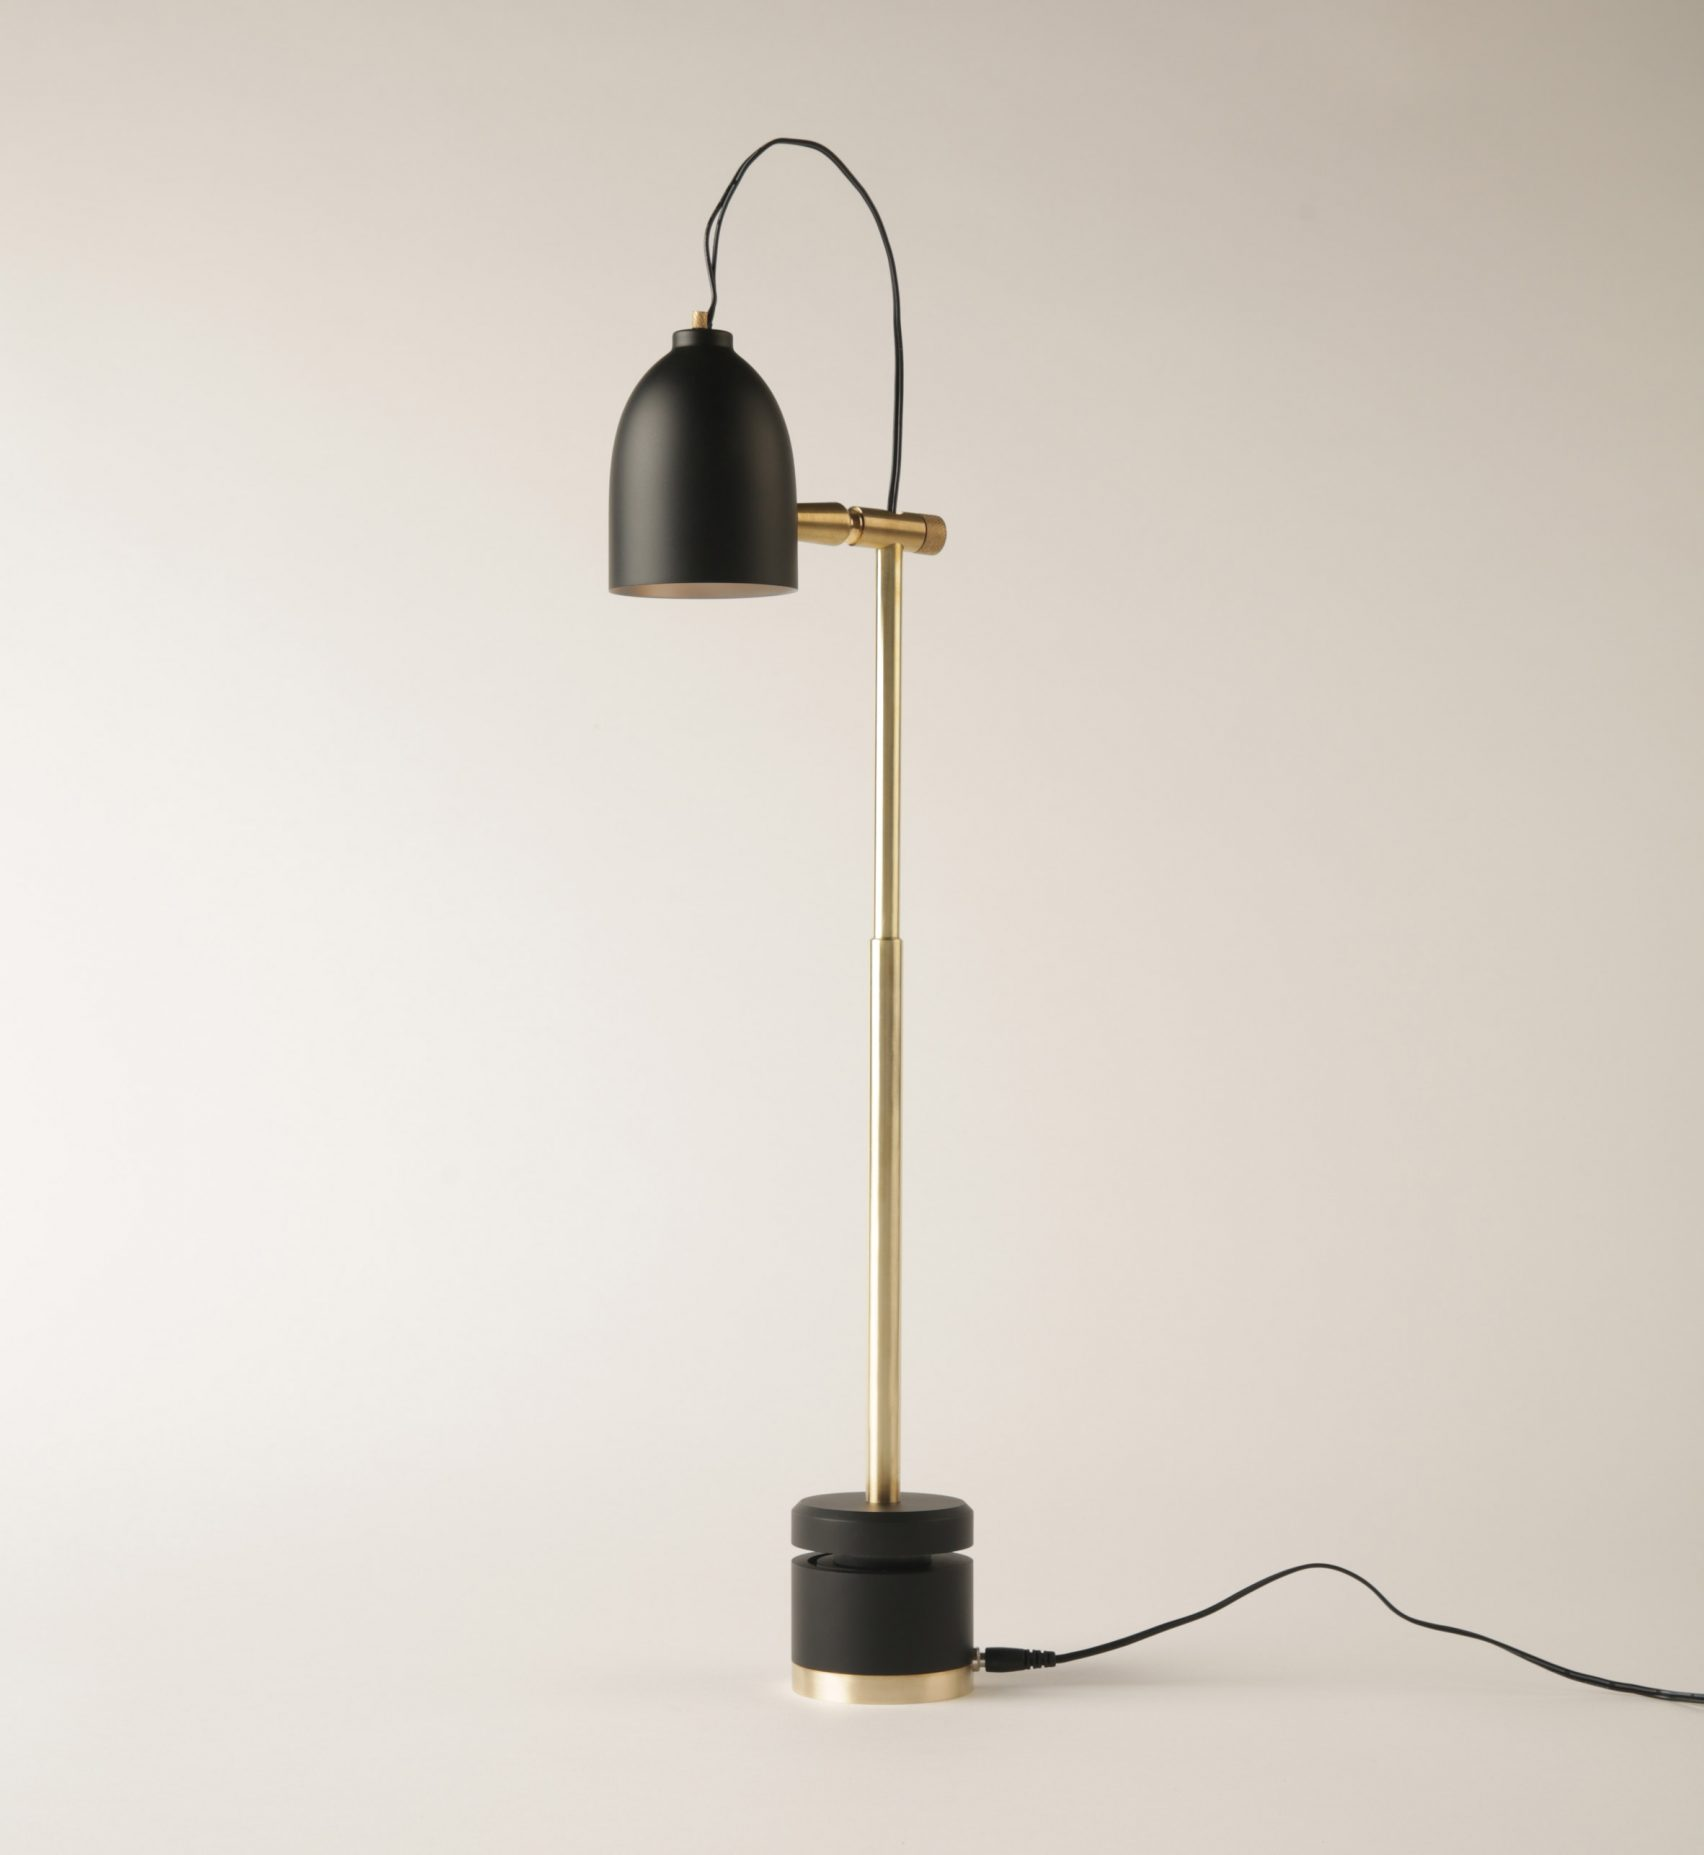 video-elitsa-boneva-made.com-talentlab-lamp-lighting-design-movie_dezeen_2364_col_25-1704x1855